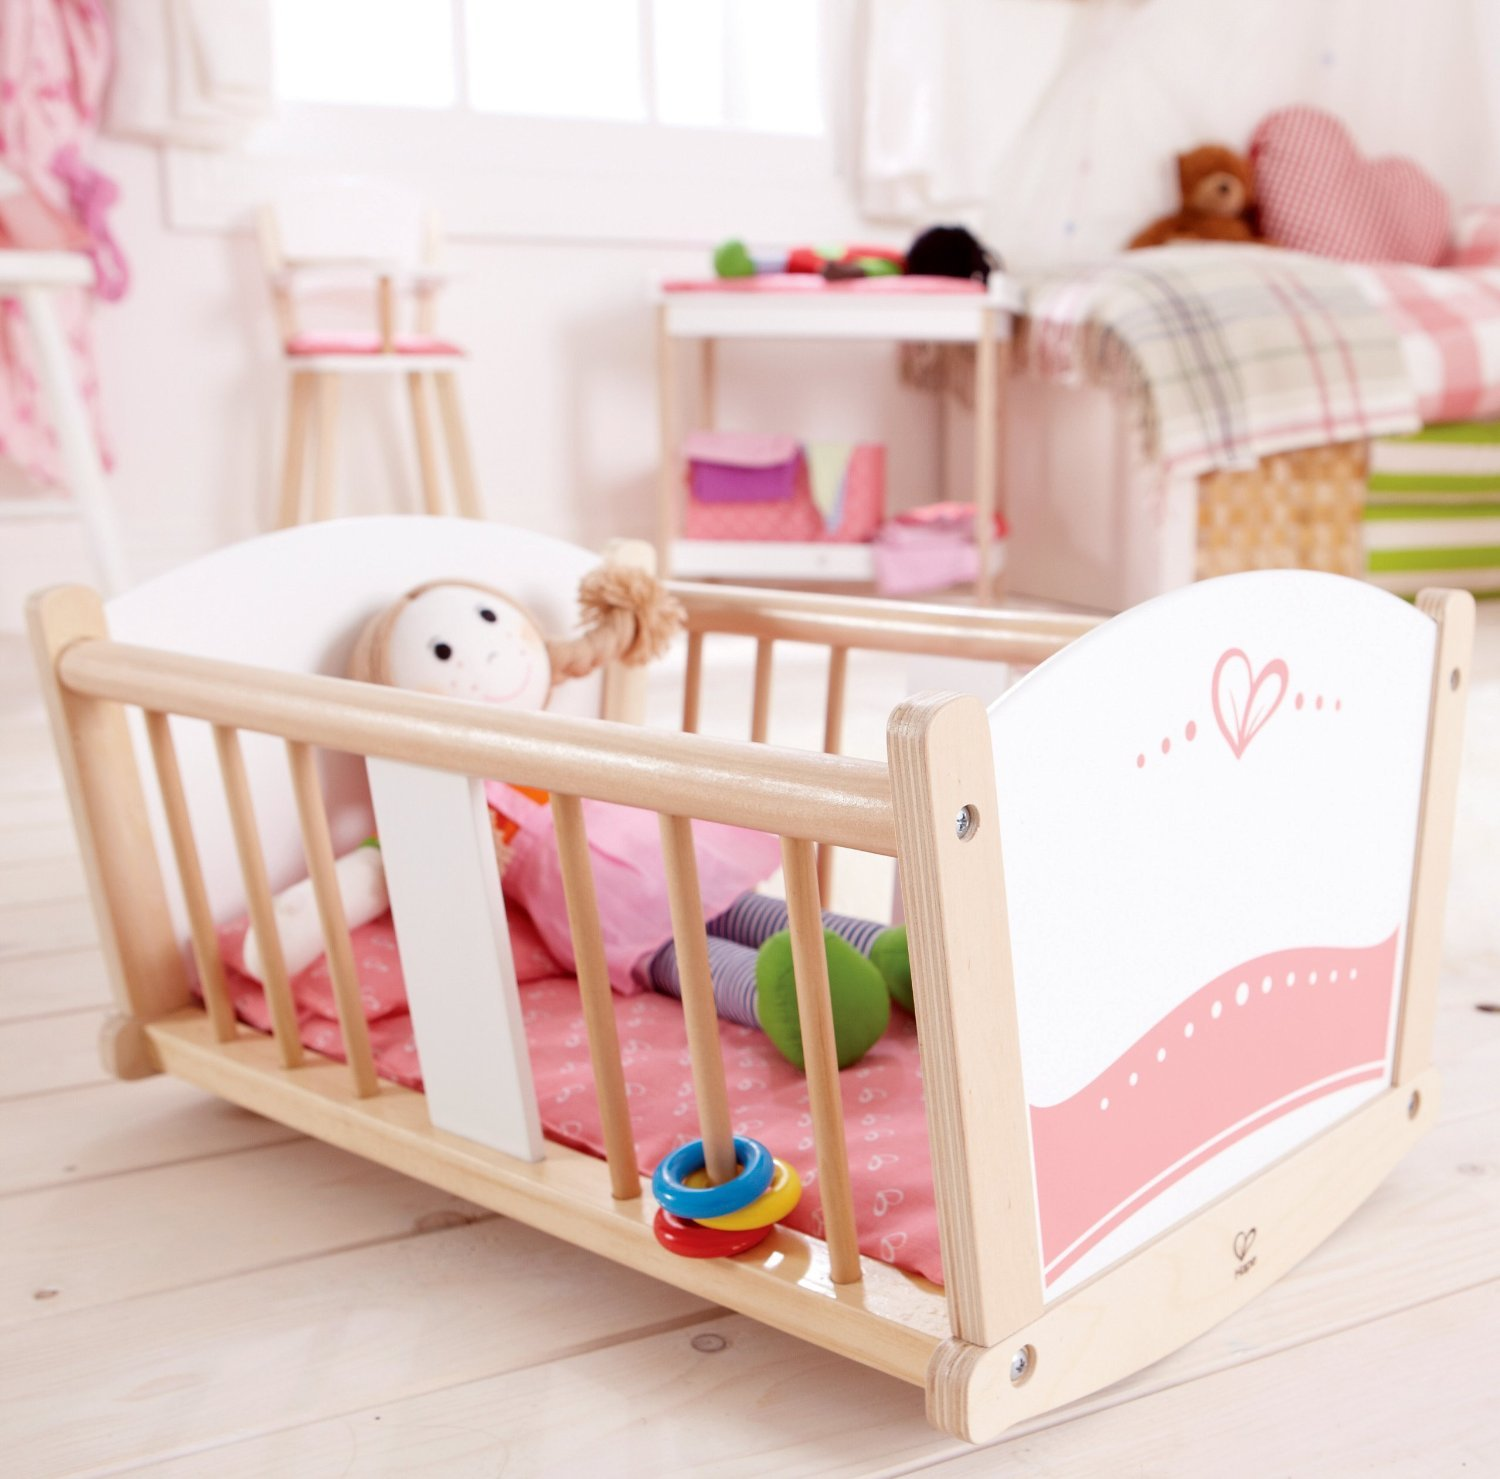 Hape Rock a bye Wooden Baby Cradle Toy